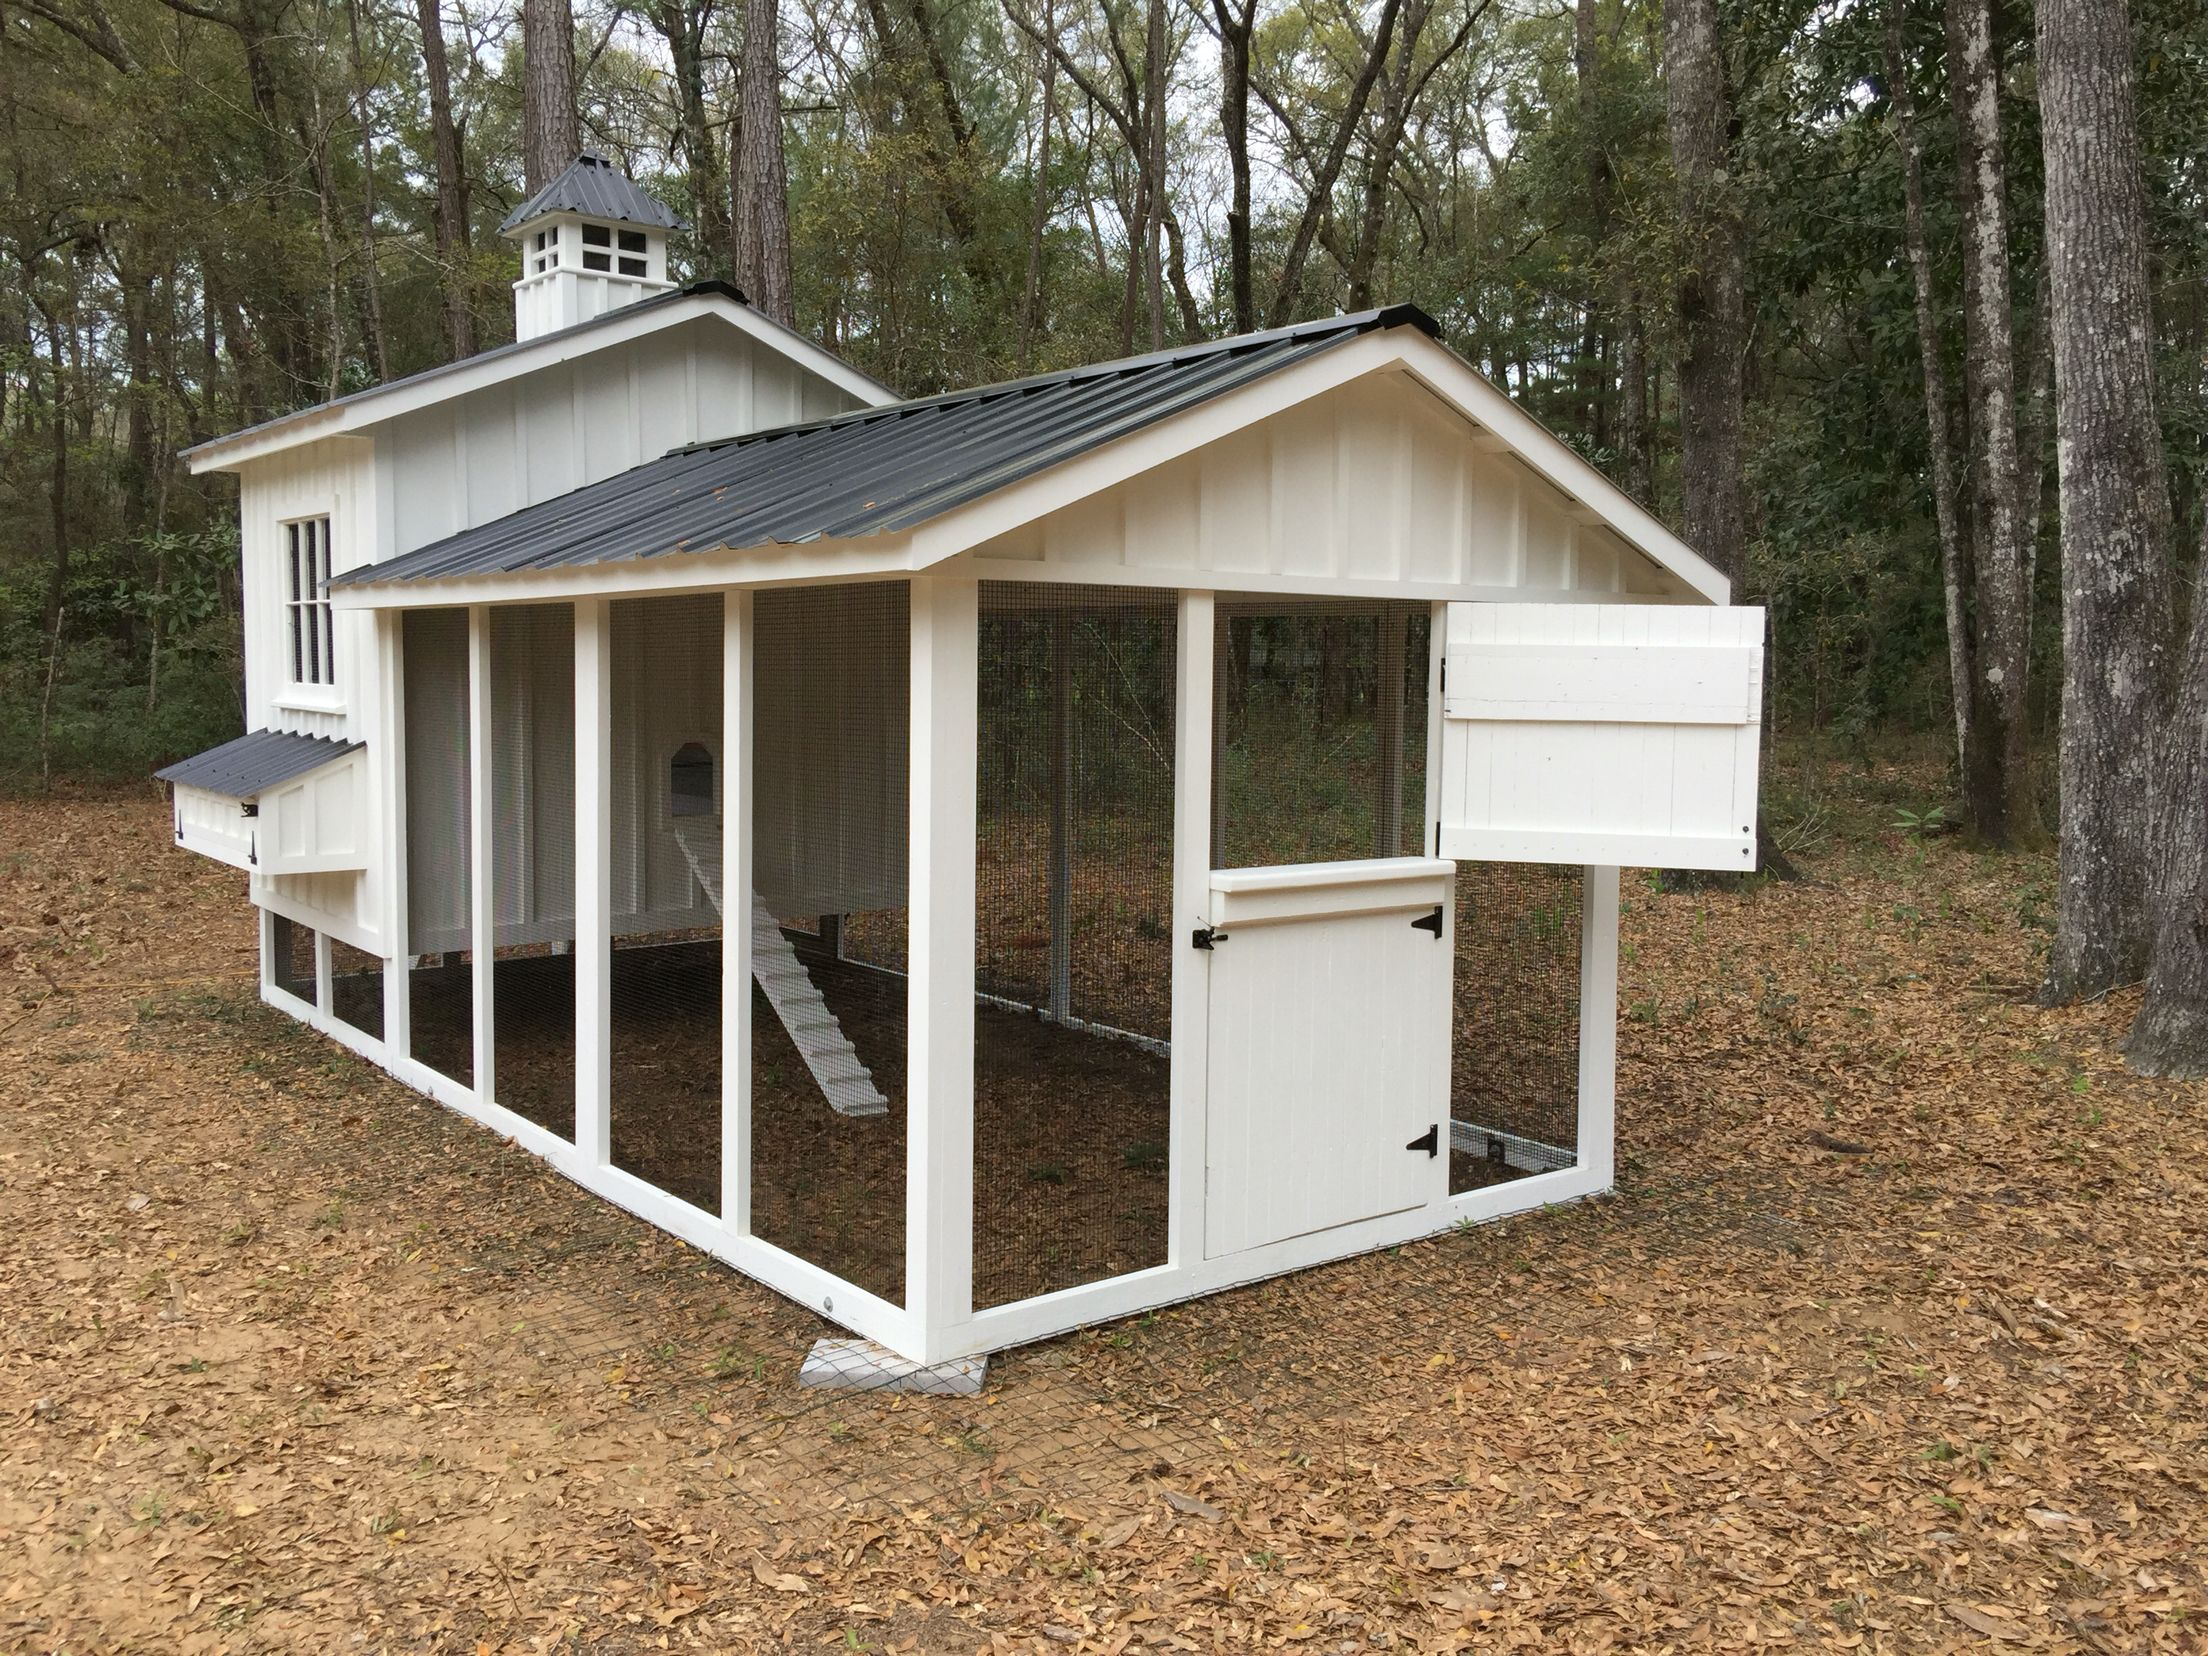 Different Types Of Chickens Large Chicken Coop Plans Chickens